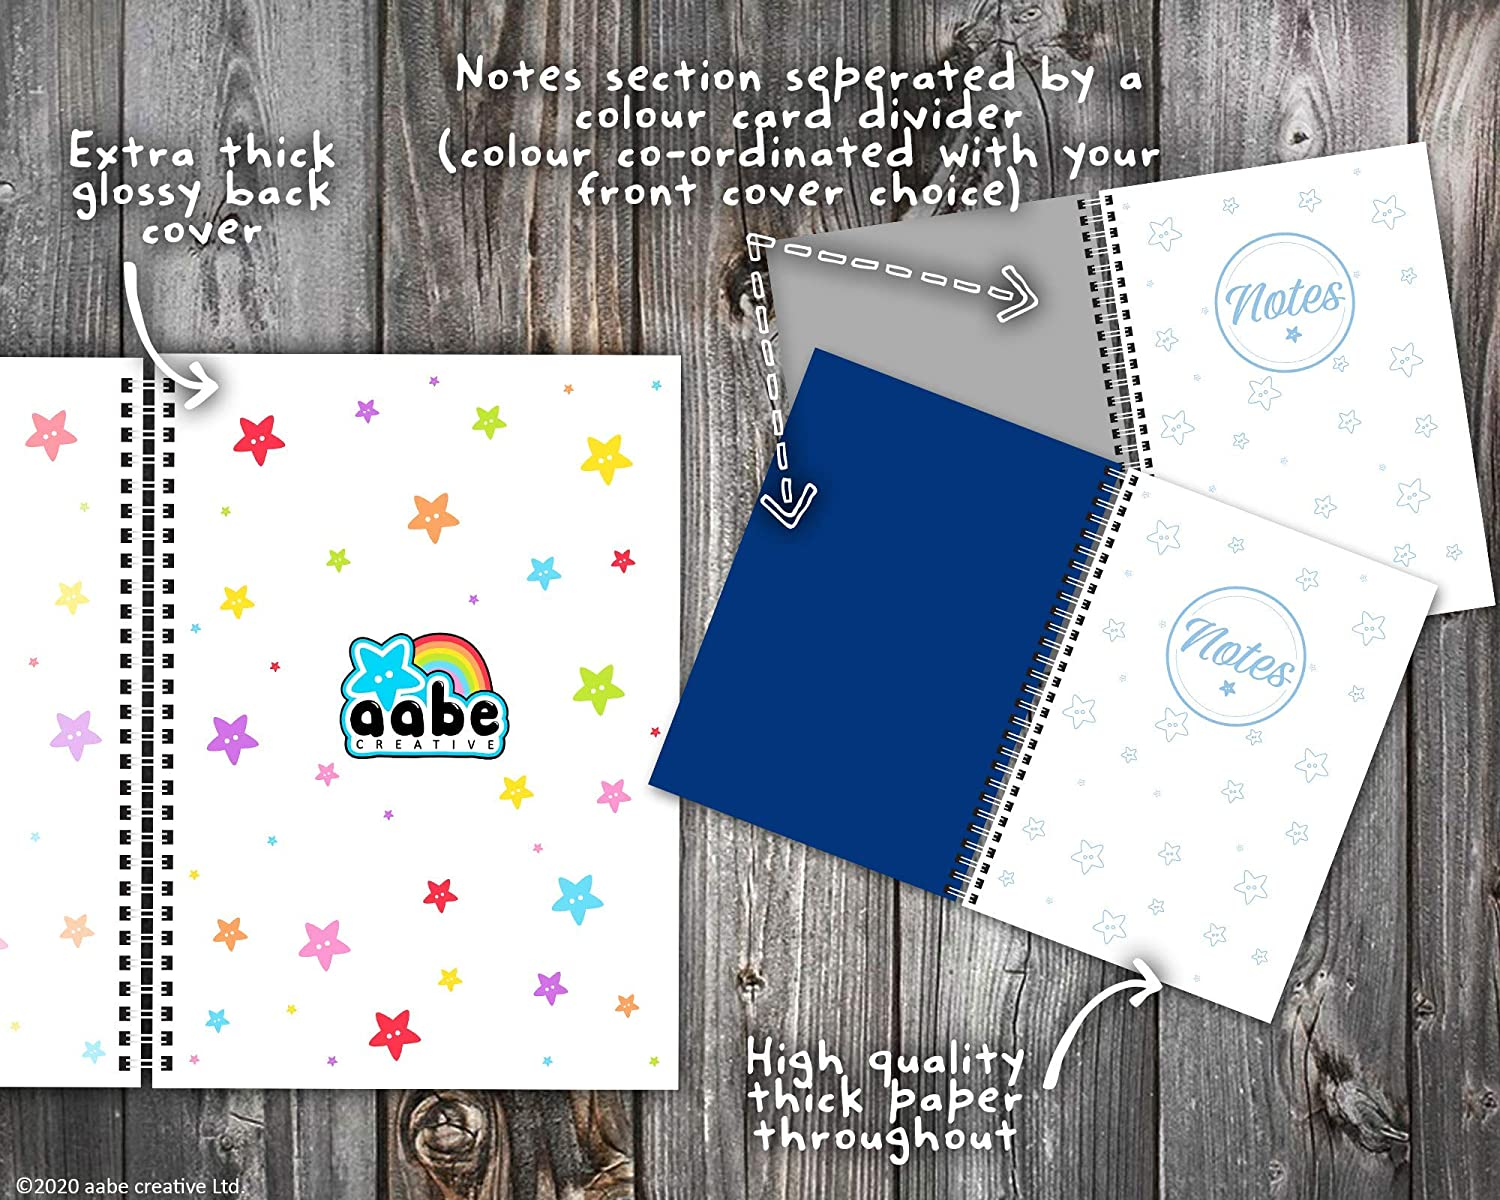 12 Months Undated Grey My Thoughtful Diary Week-to-View Colourful Mood Tracker Planner Journal - A5